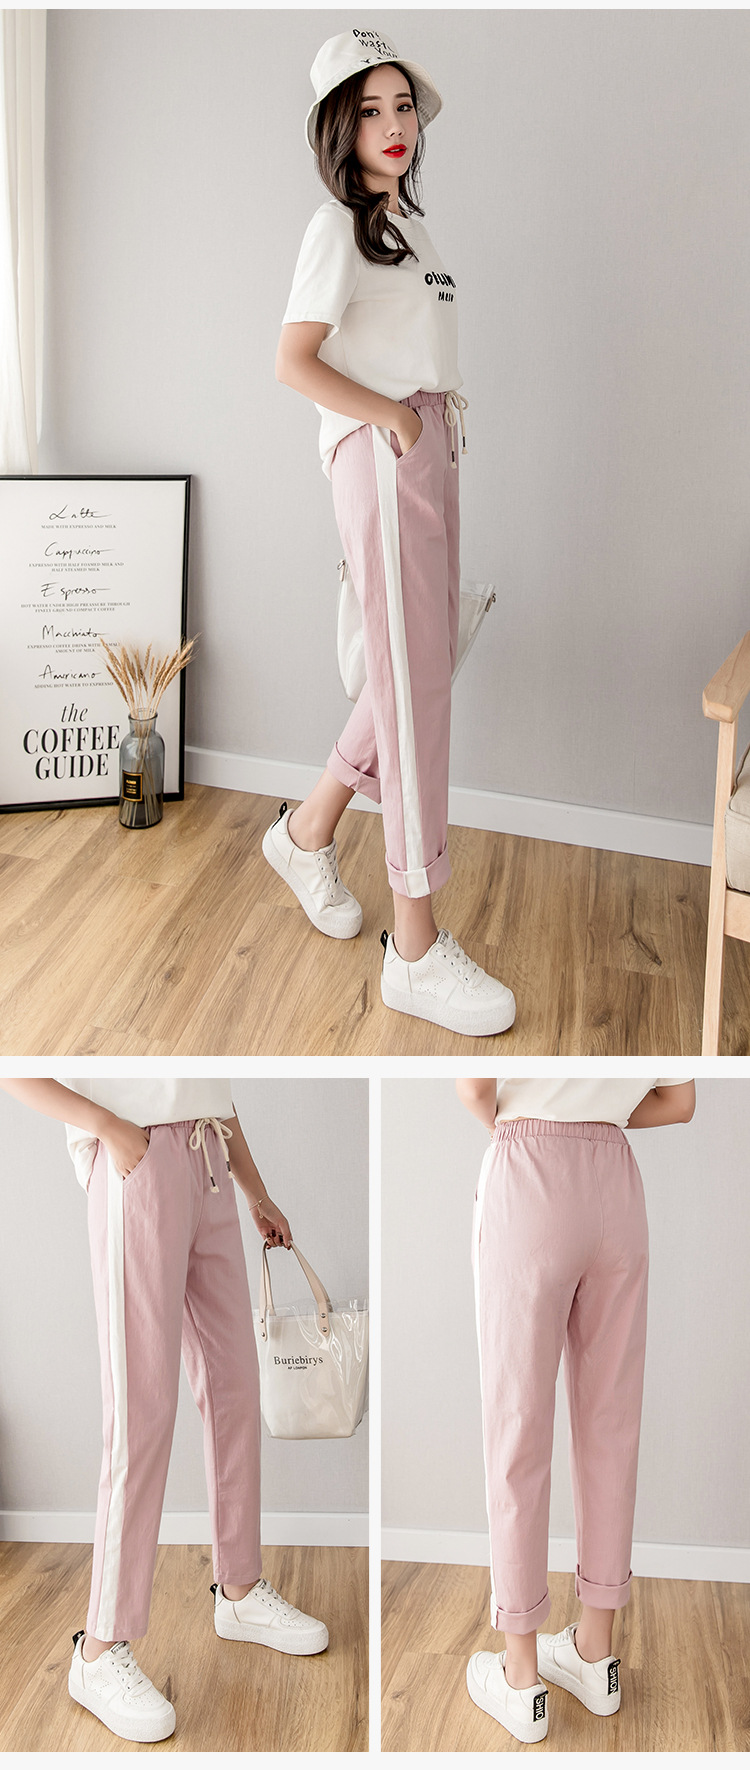 Cotton Linen Ankle Length Pants Women's Spring Summer Casual Trousers Pencil Casual Pants Striped Women's Trousers Green Pink 8